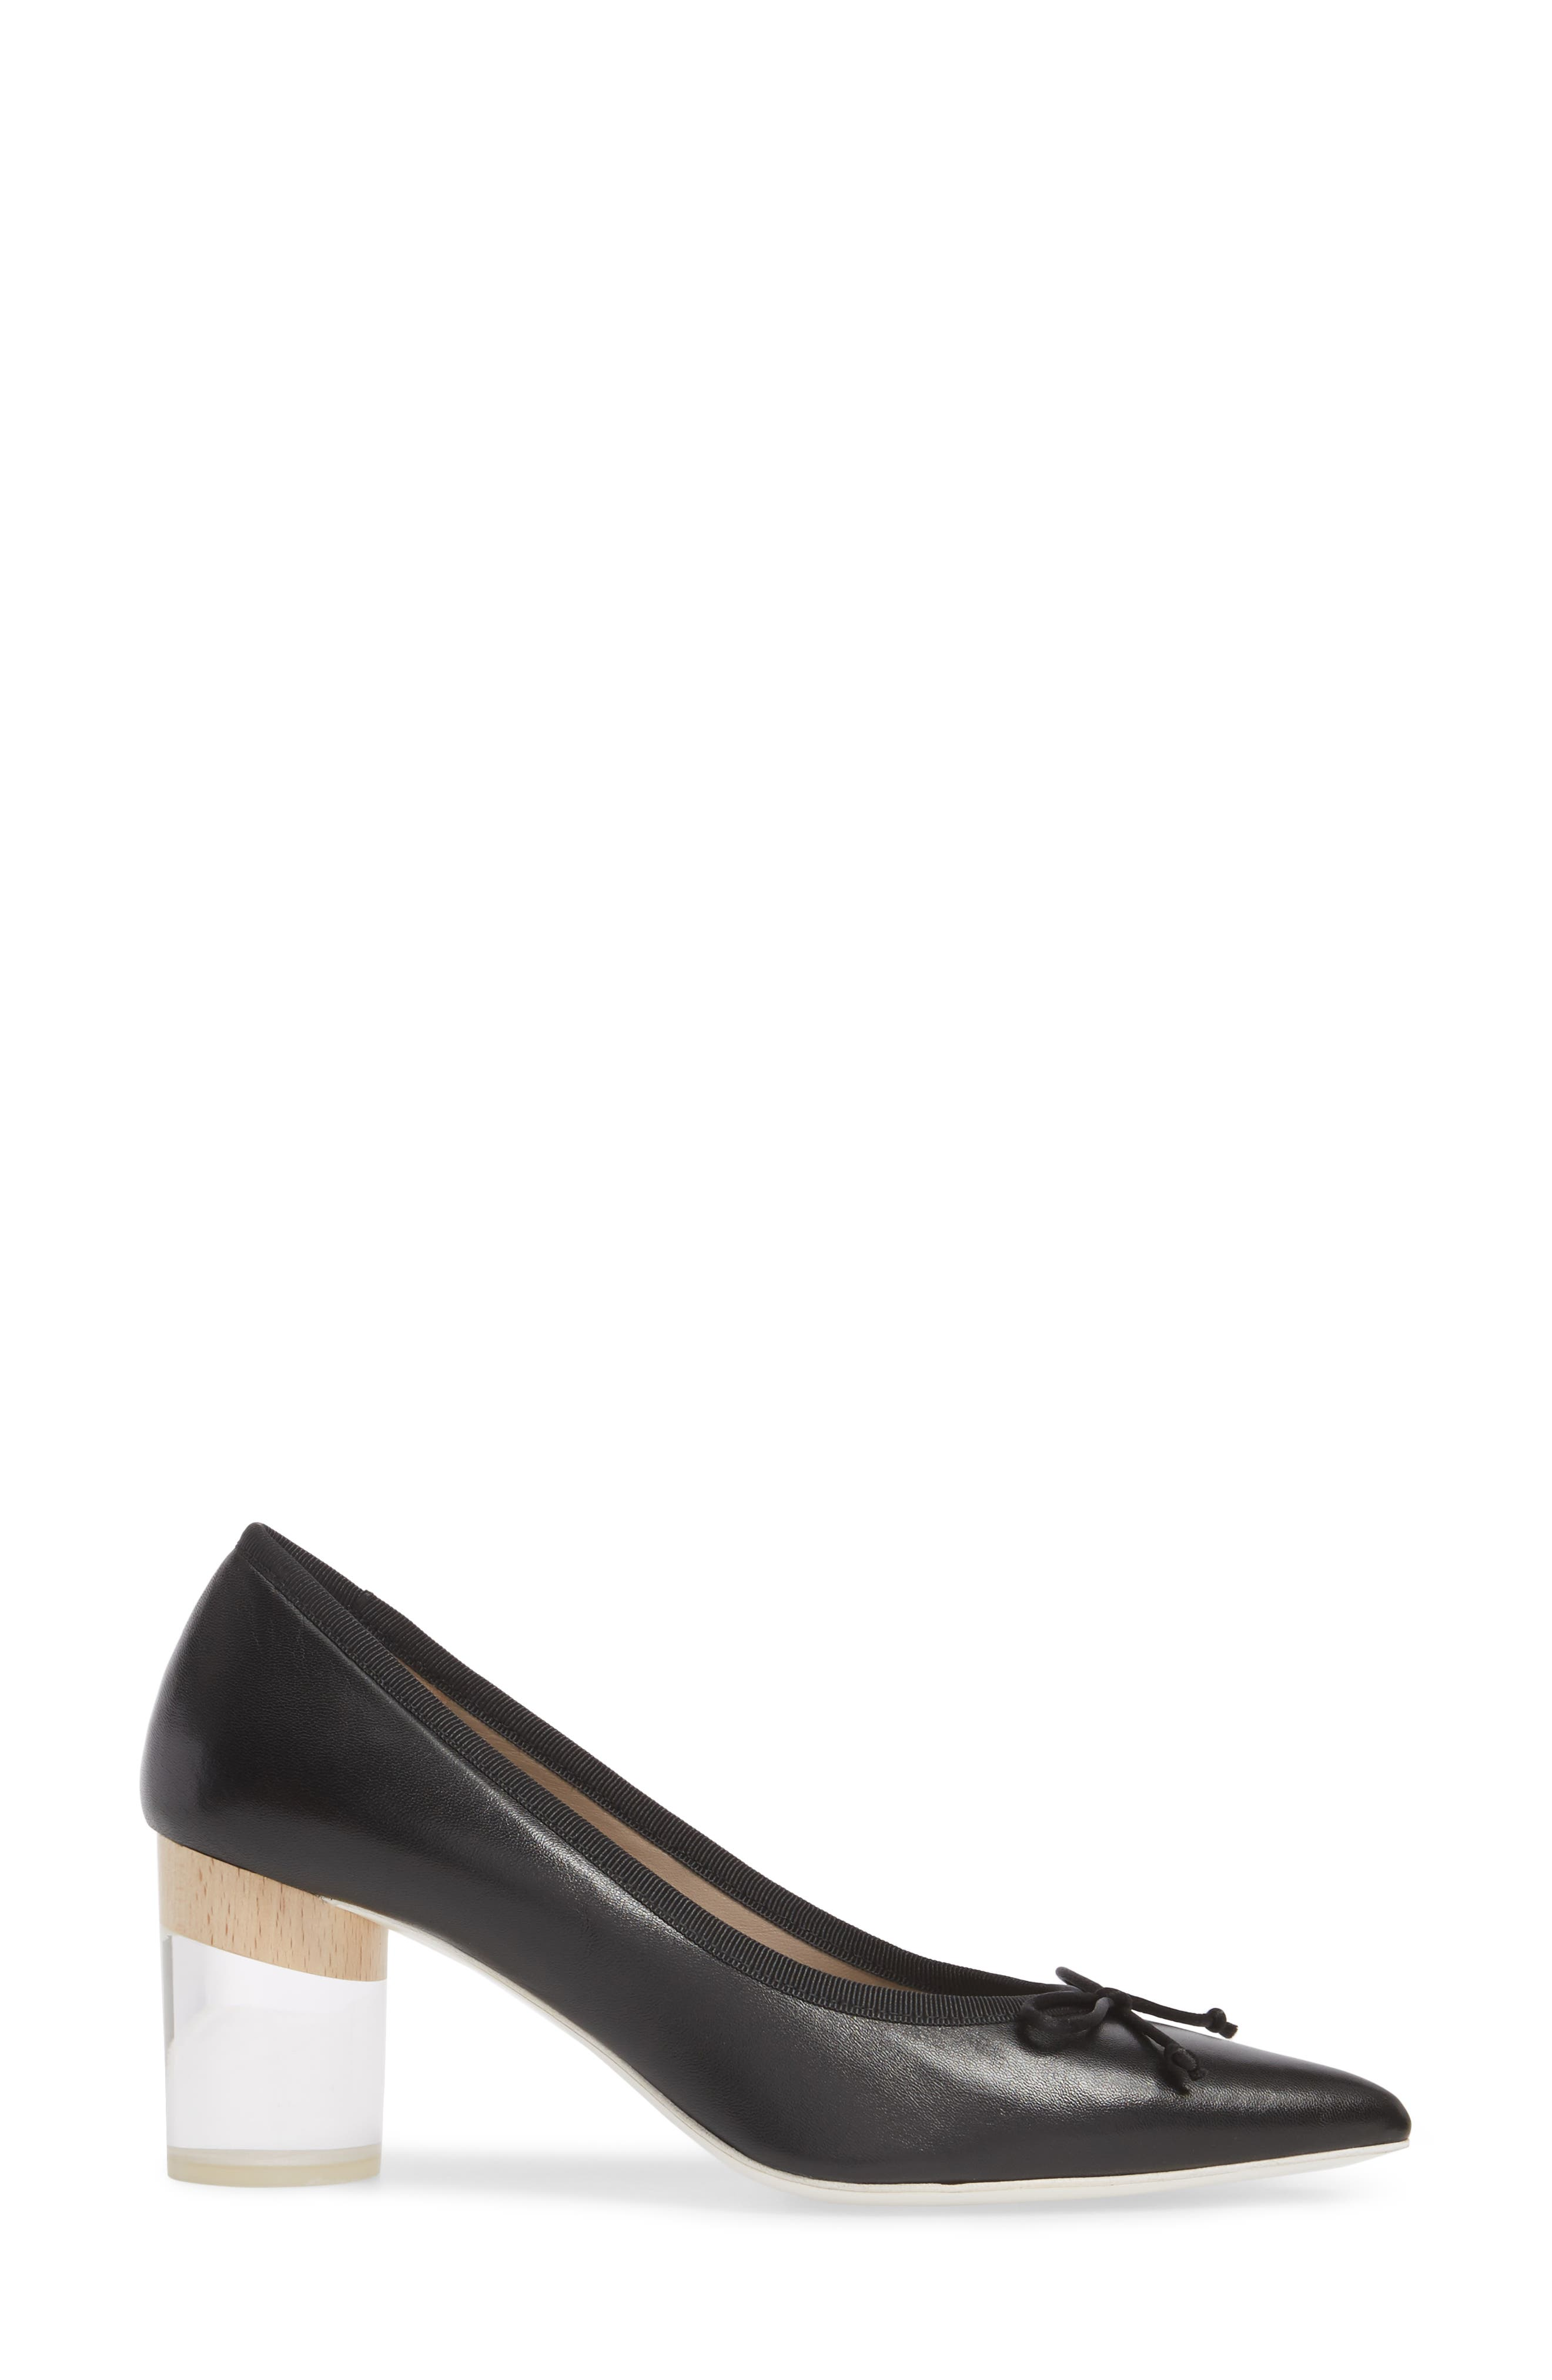 Asia Pointy Toe Pump,                             Alternate thumbnail 3, color,                             Black Leather